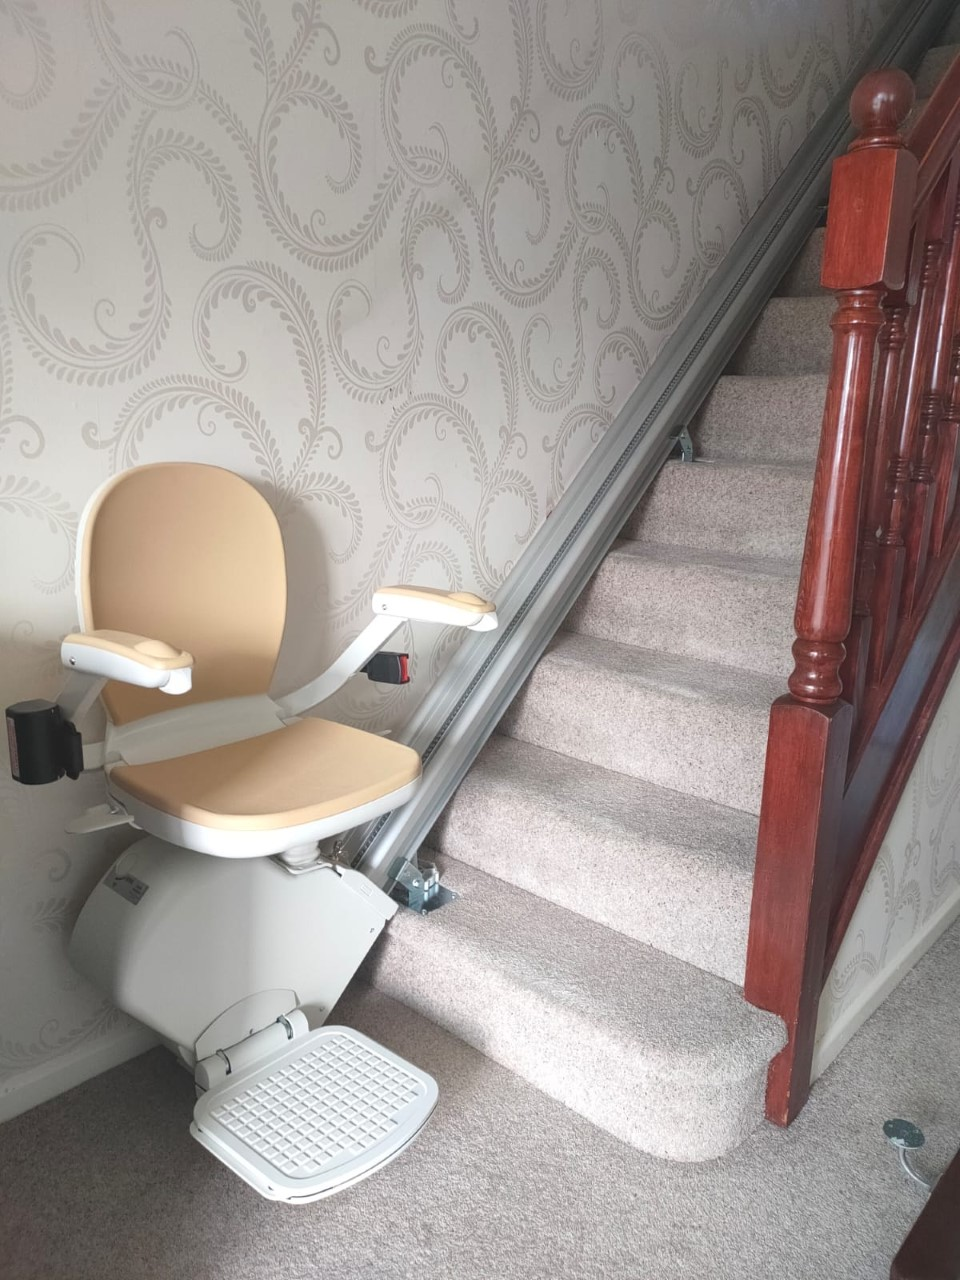 Rented stairlift photo